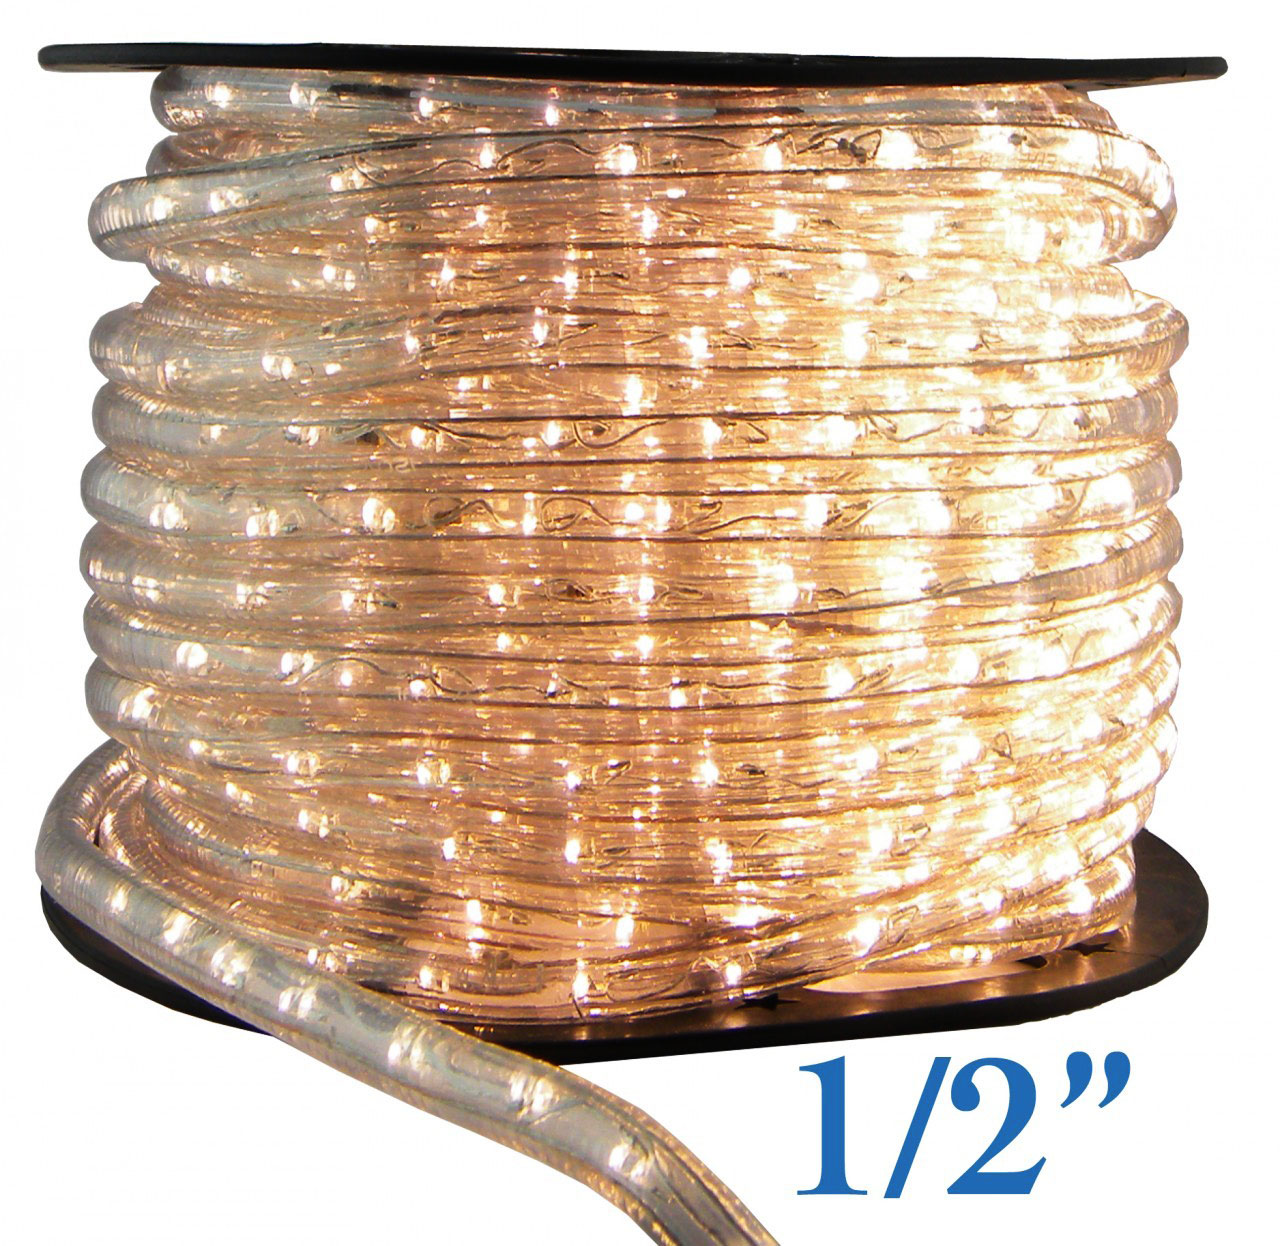 How to cut rope light 12v 2 wire rope light spool 05inch 59117136492475812801280g aloadofball Choice Image